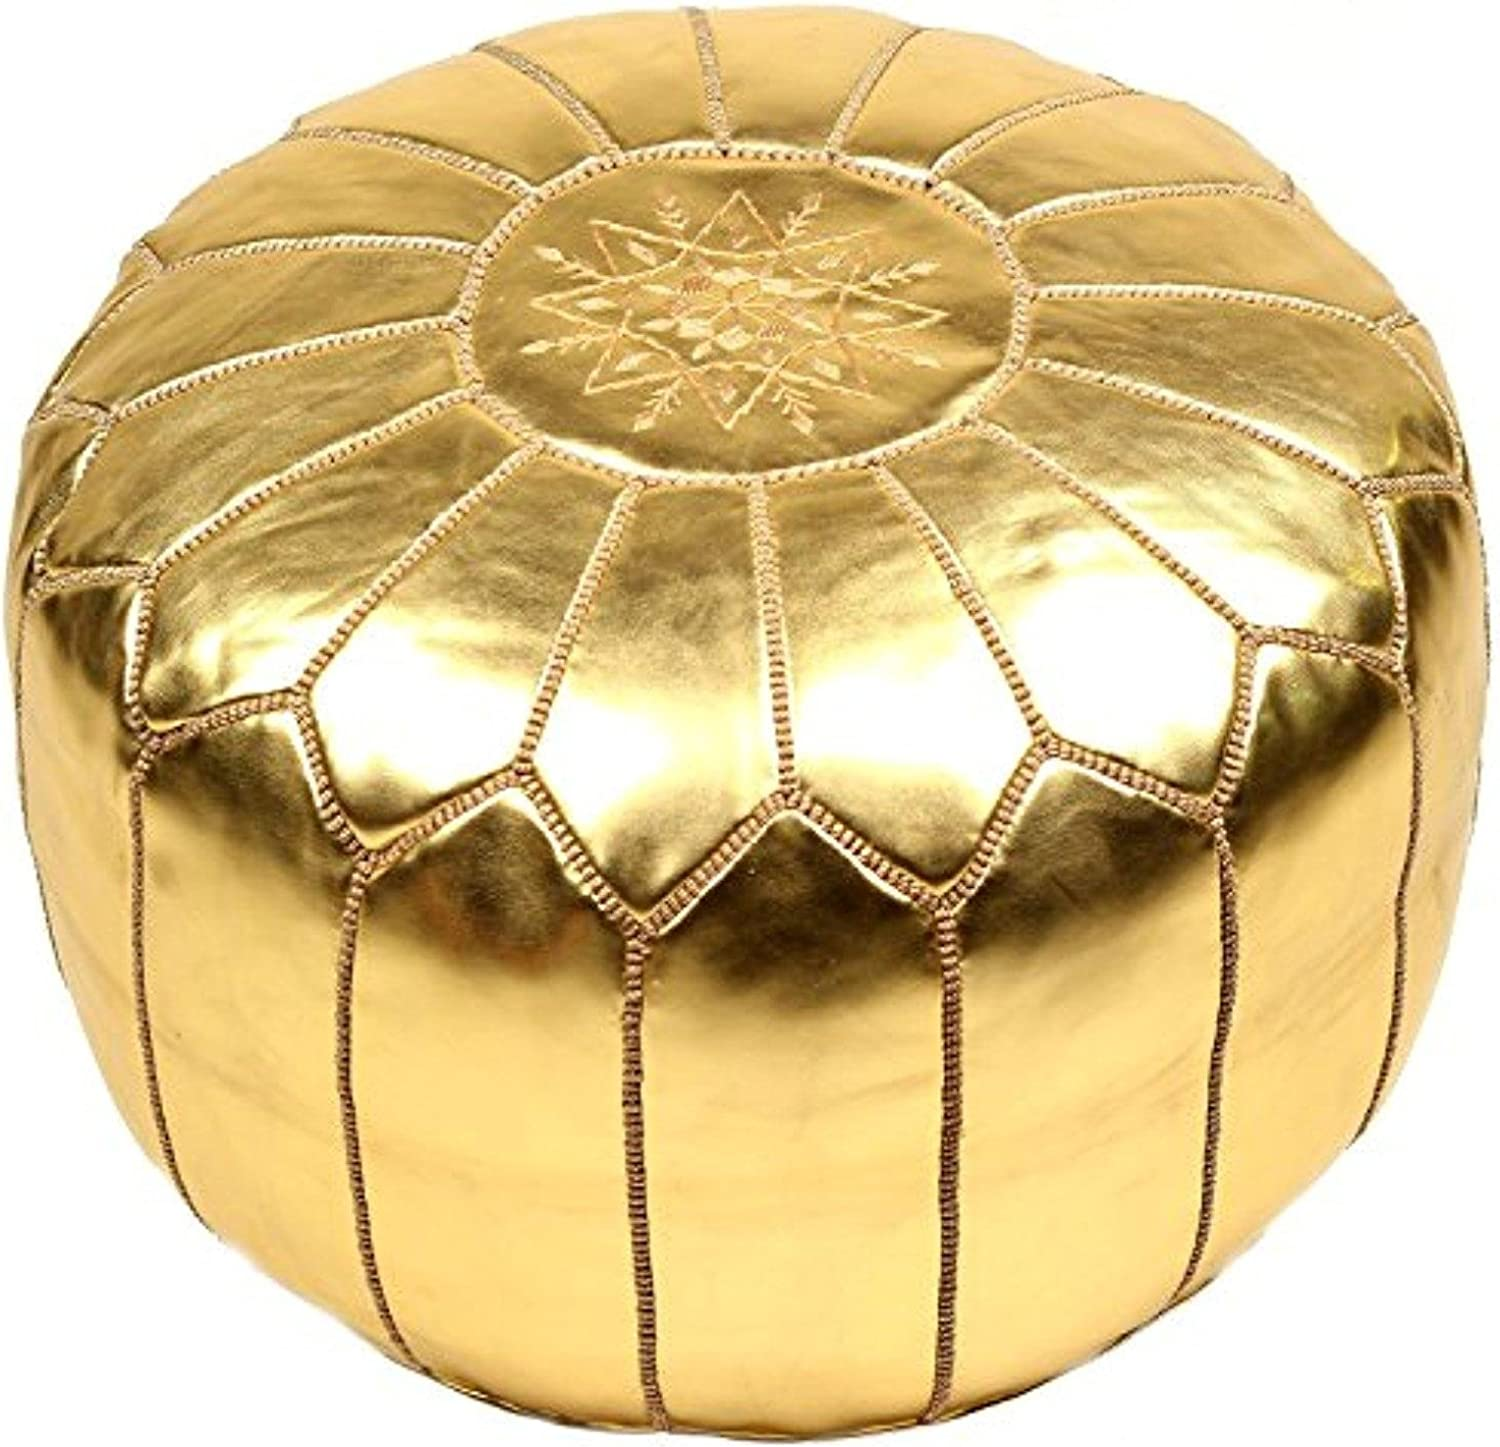 La Bohemia   Beautiful Handmade gold Footstool Pouf from Marrakech   Colour gold   Delivered unstuffed